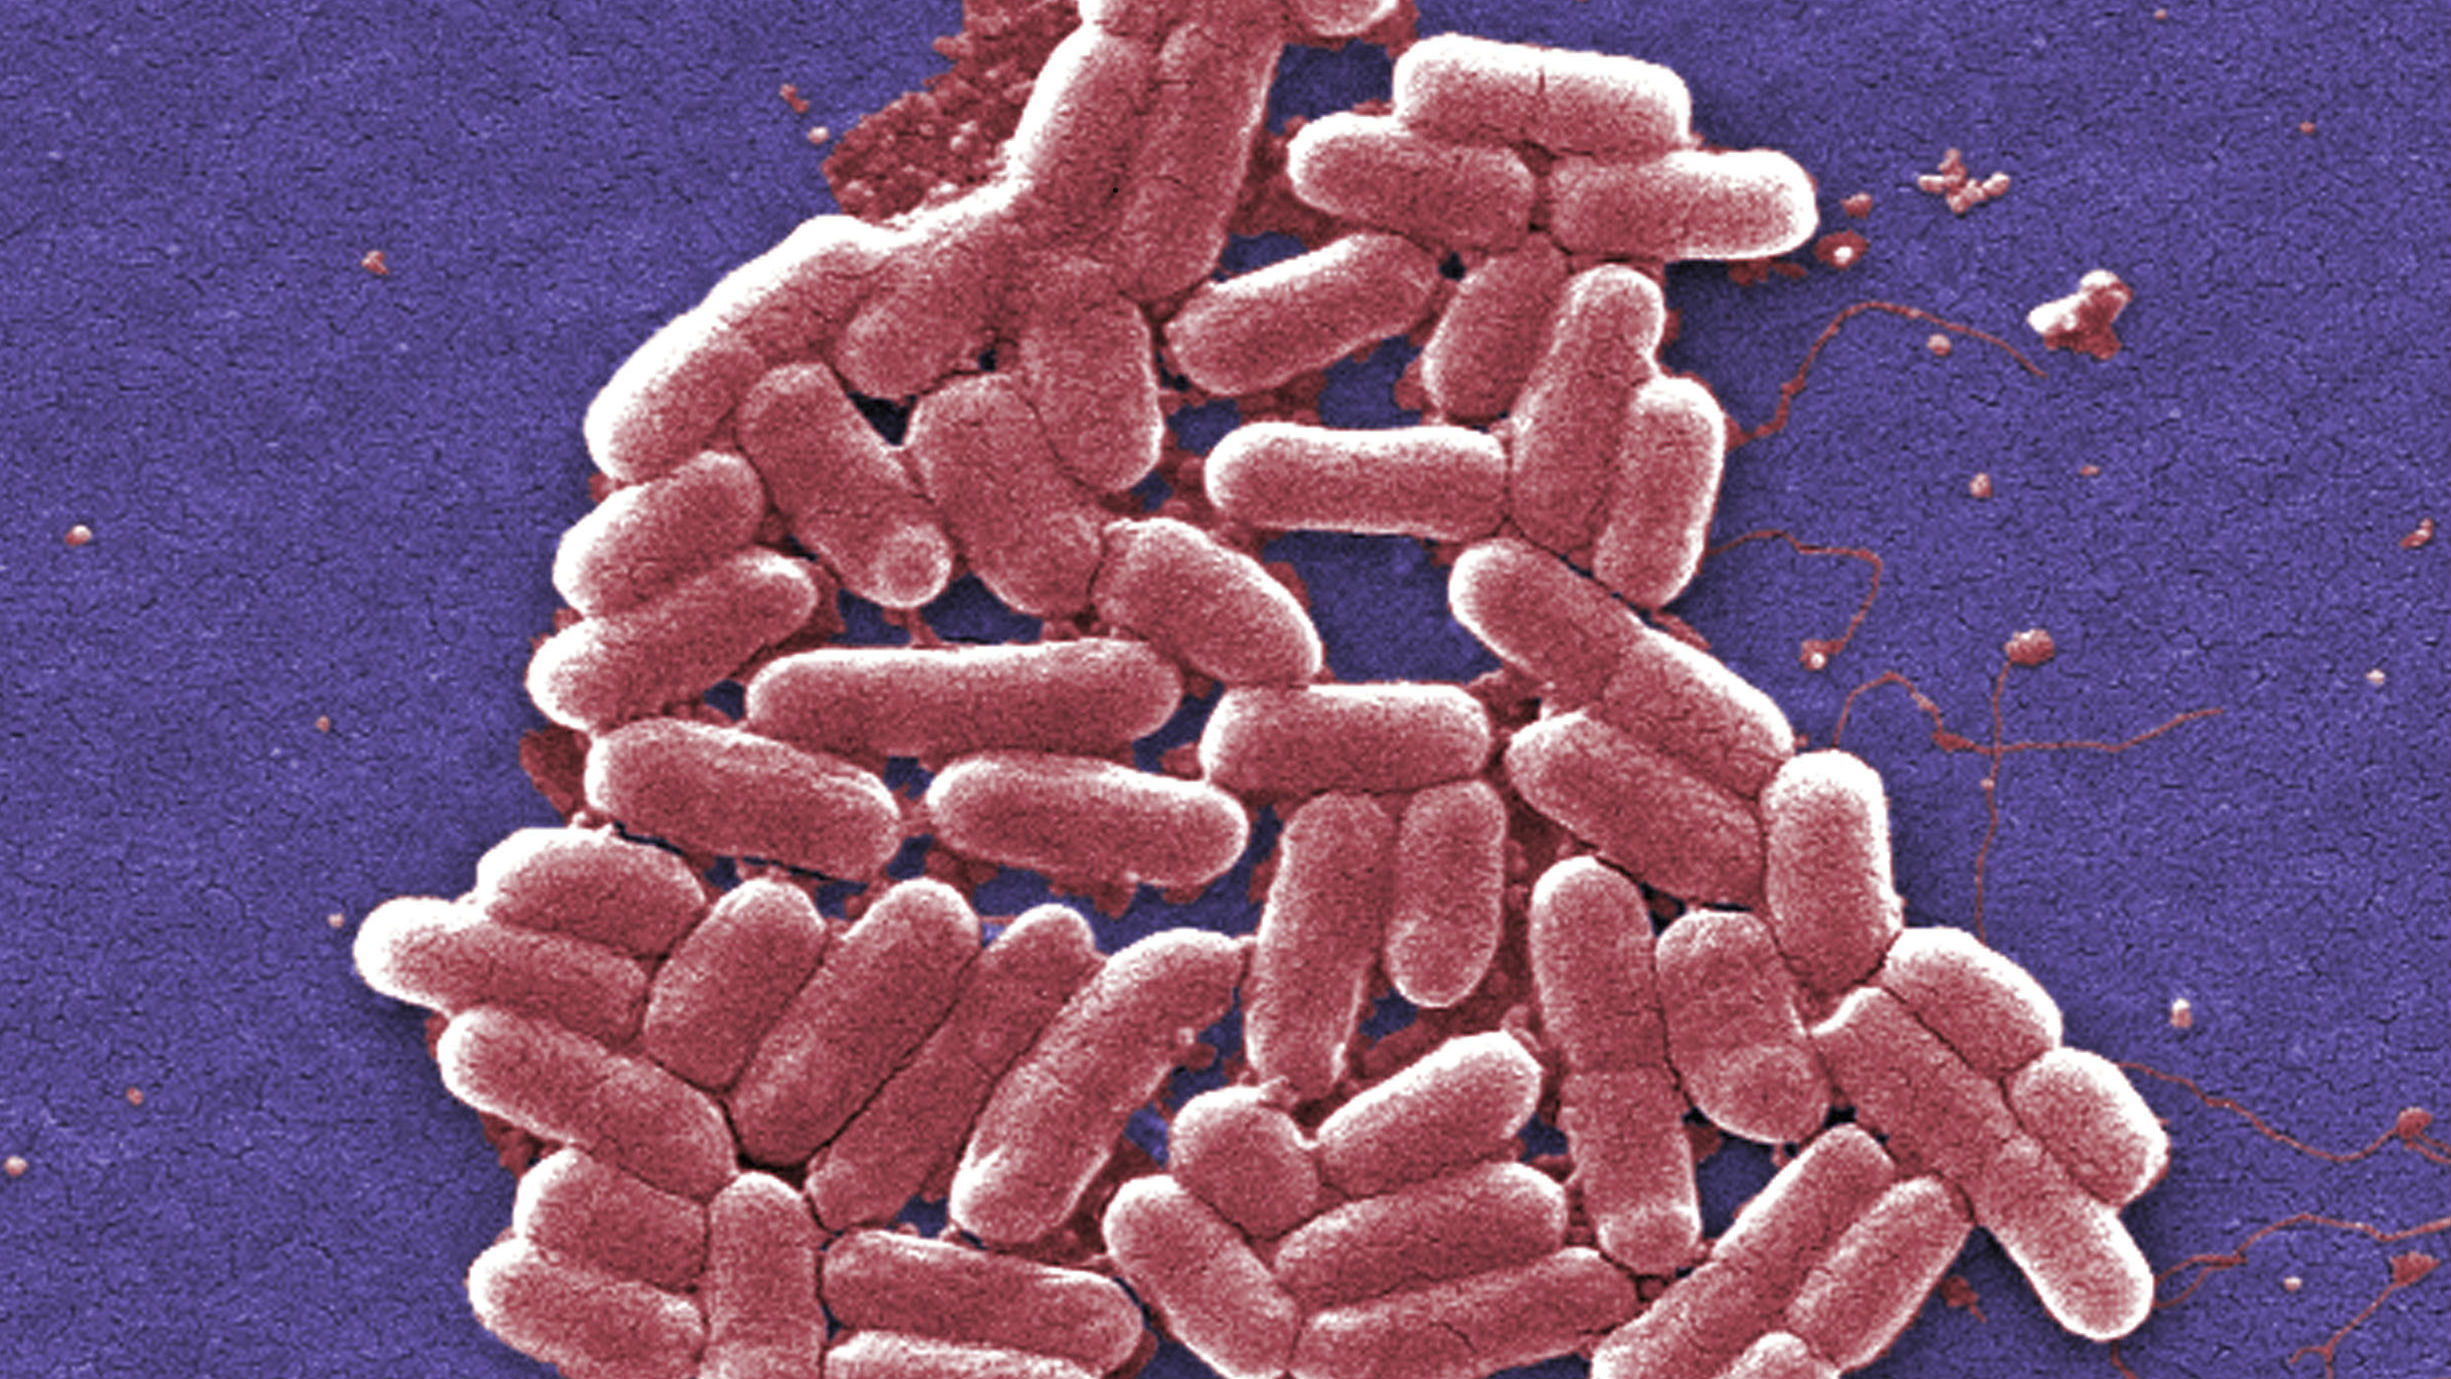 This 2006 colorized scanning electron micrograph image made available by the Centers for Disease Control and Prevention shows the O157:H7 strain of the E. coli bacteria. New research suggests that a worrying number of people in China are infected with bacteria resistant to an antibiotic used as a last resort. Researchers examined more than 17,000 samples from patients with infections of common bacteria found in the gut, in two hospitals in China's Zhejiang and Guangdong provinces, over eight years. About 1 percent of those samples were resistant to colistin, often considered the last option in antibiotics. The study was published Friday, Jan. 27, 2017 in the journal, Lancet